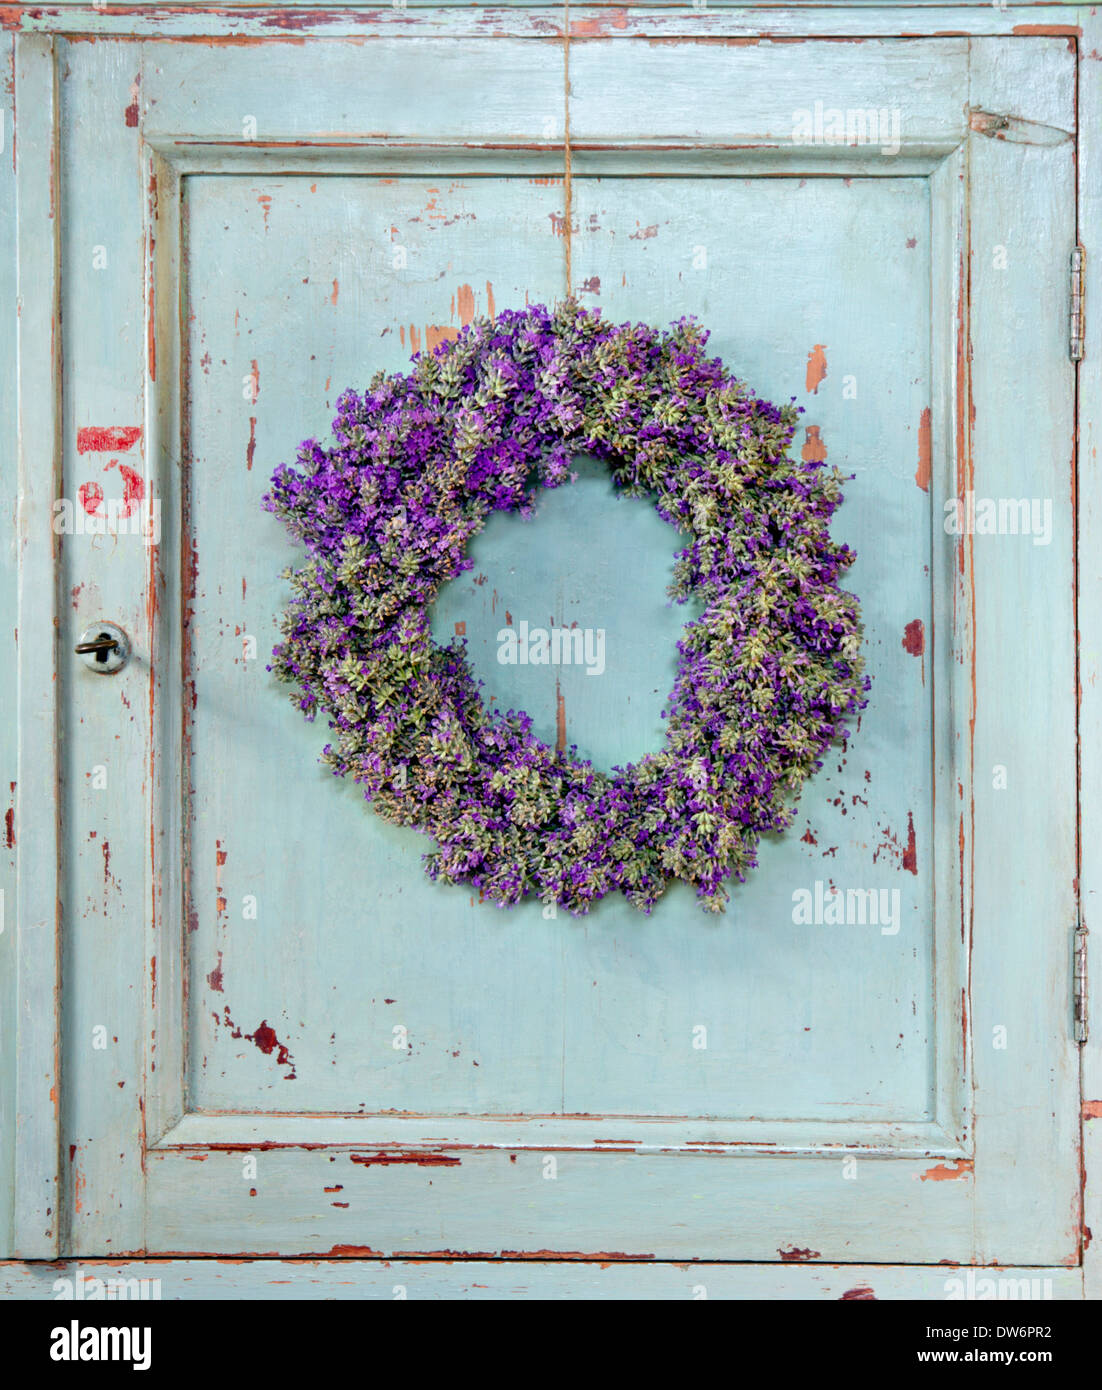 Lavender Flower Wreath Hanging On An Old Wooden Vintage Kitchen Door Frame  With Copy Space